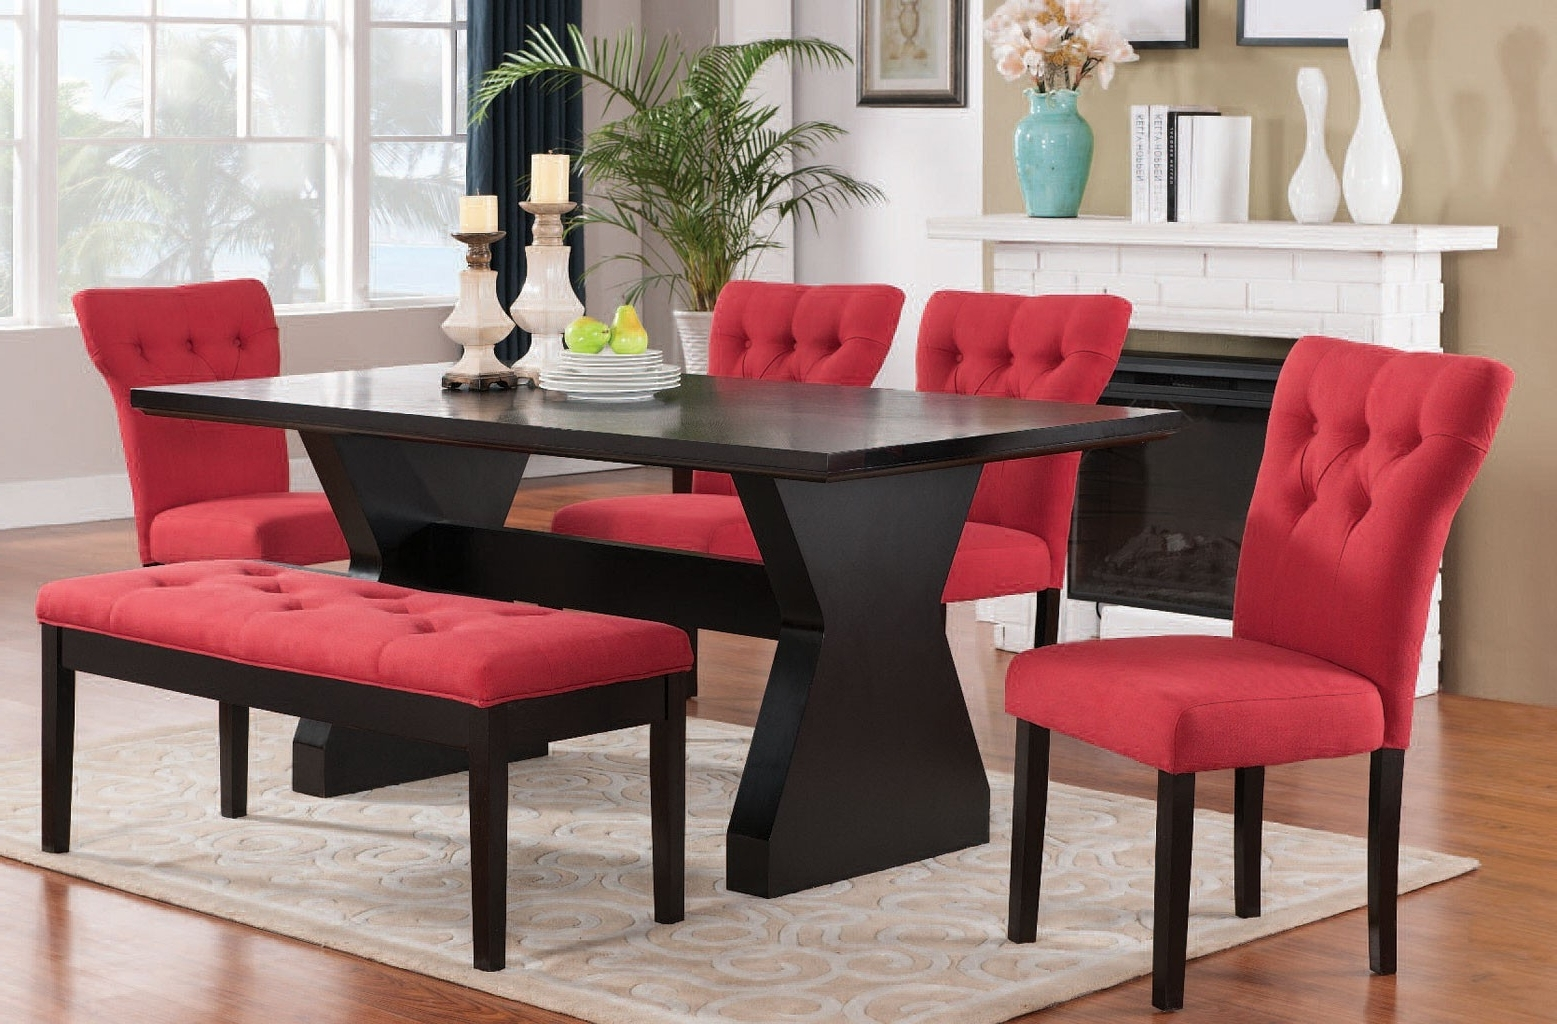 2018 Red Dining Chairs For Your Dining Rooms – Home Decor Ideas Pertaining To Red Dining Table Sets (Gallery 1 of 25)